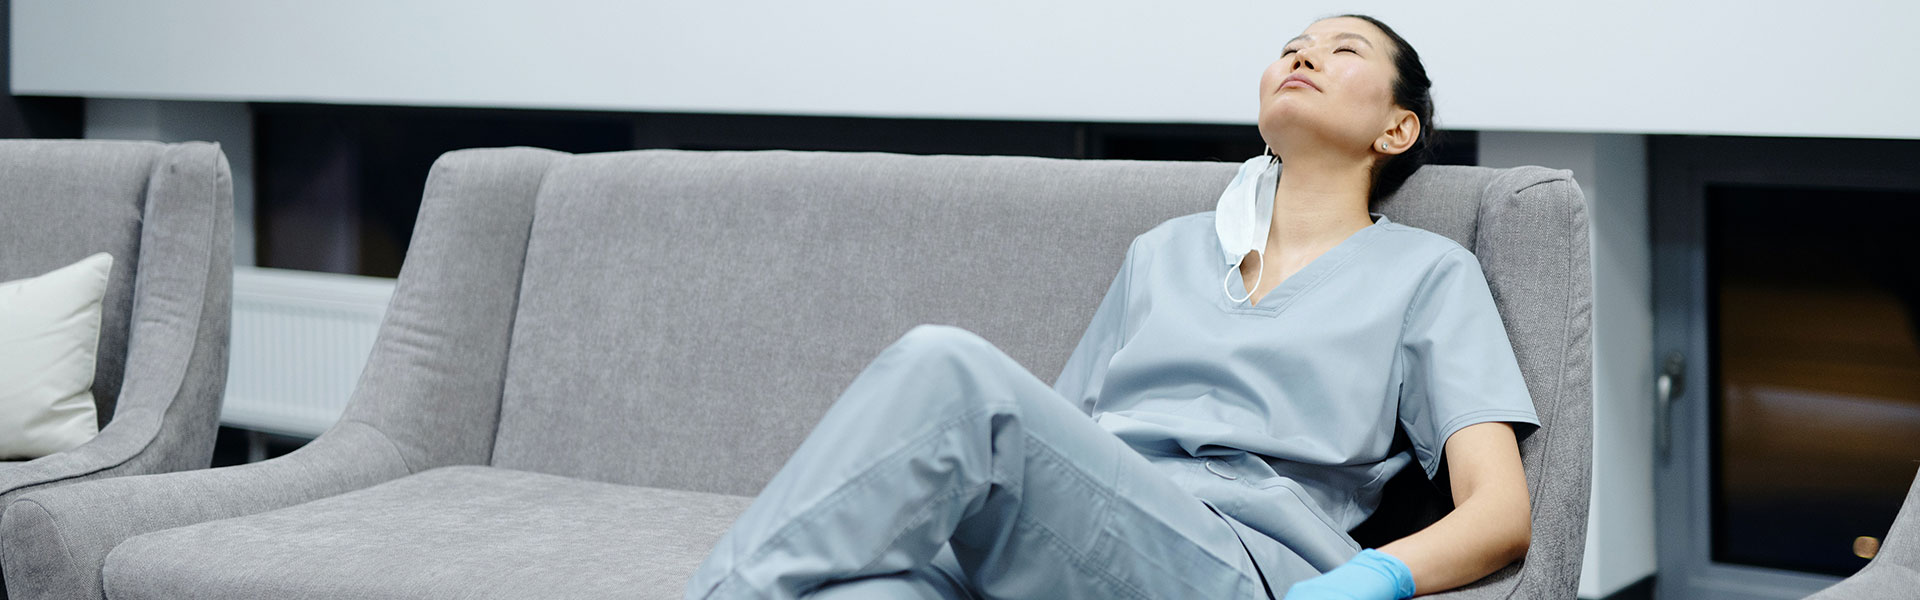 An image of a health care worker resting on a couch